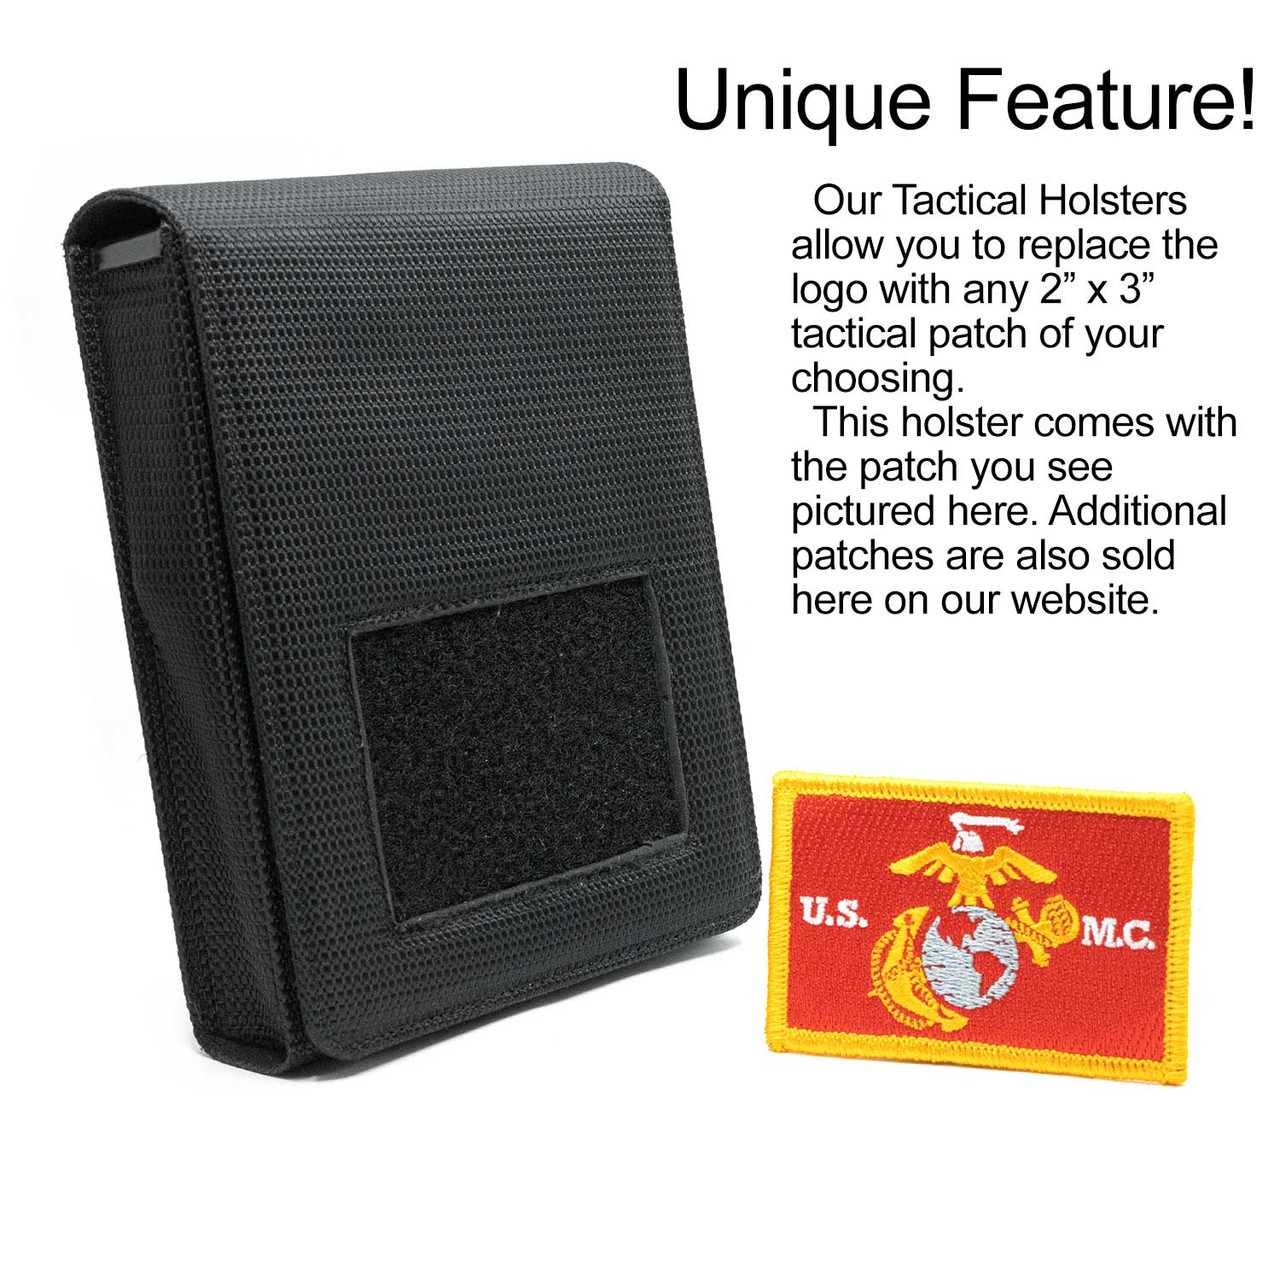 Taurus G2S Marine Corps Tactical Patch Holster